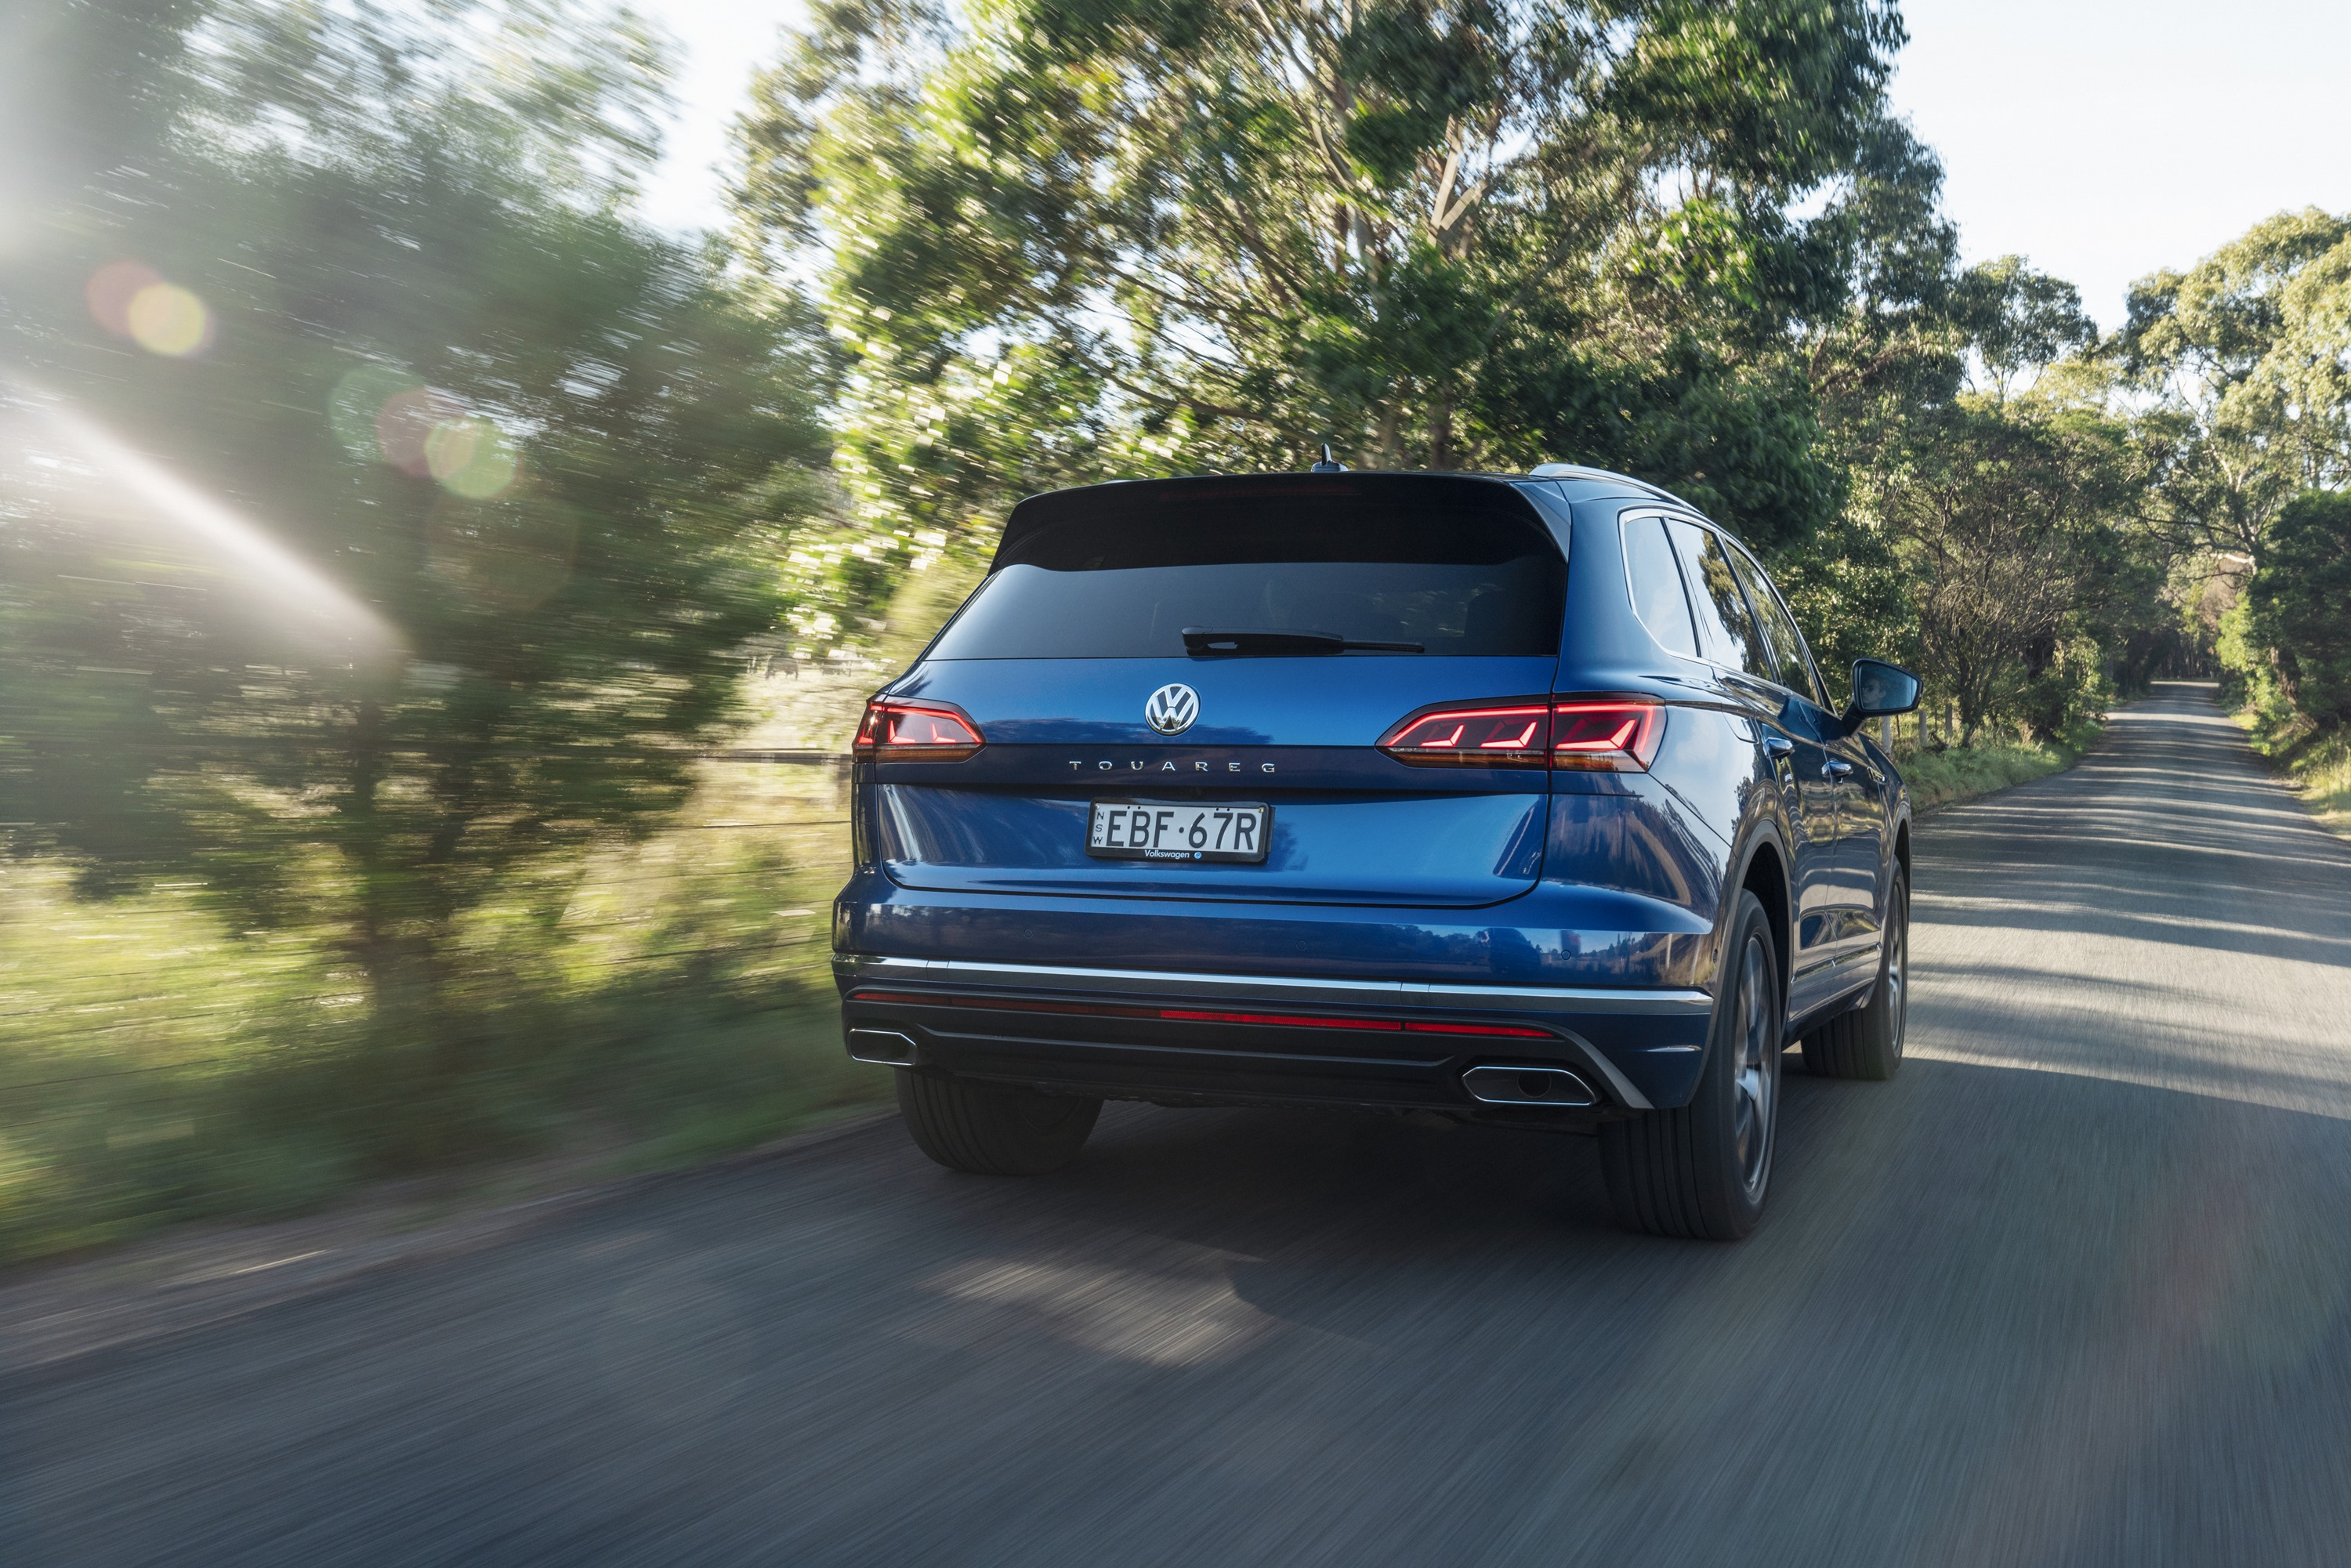 2019 VW Touareg Launch Edition 15 rear